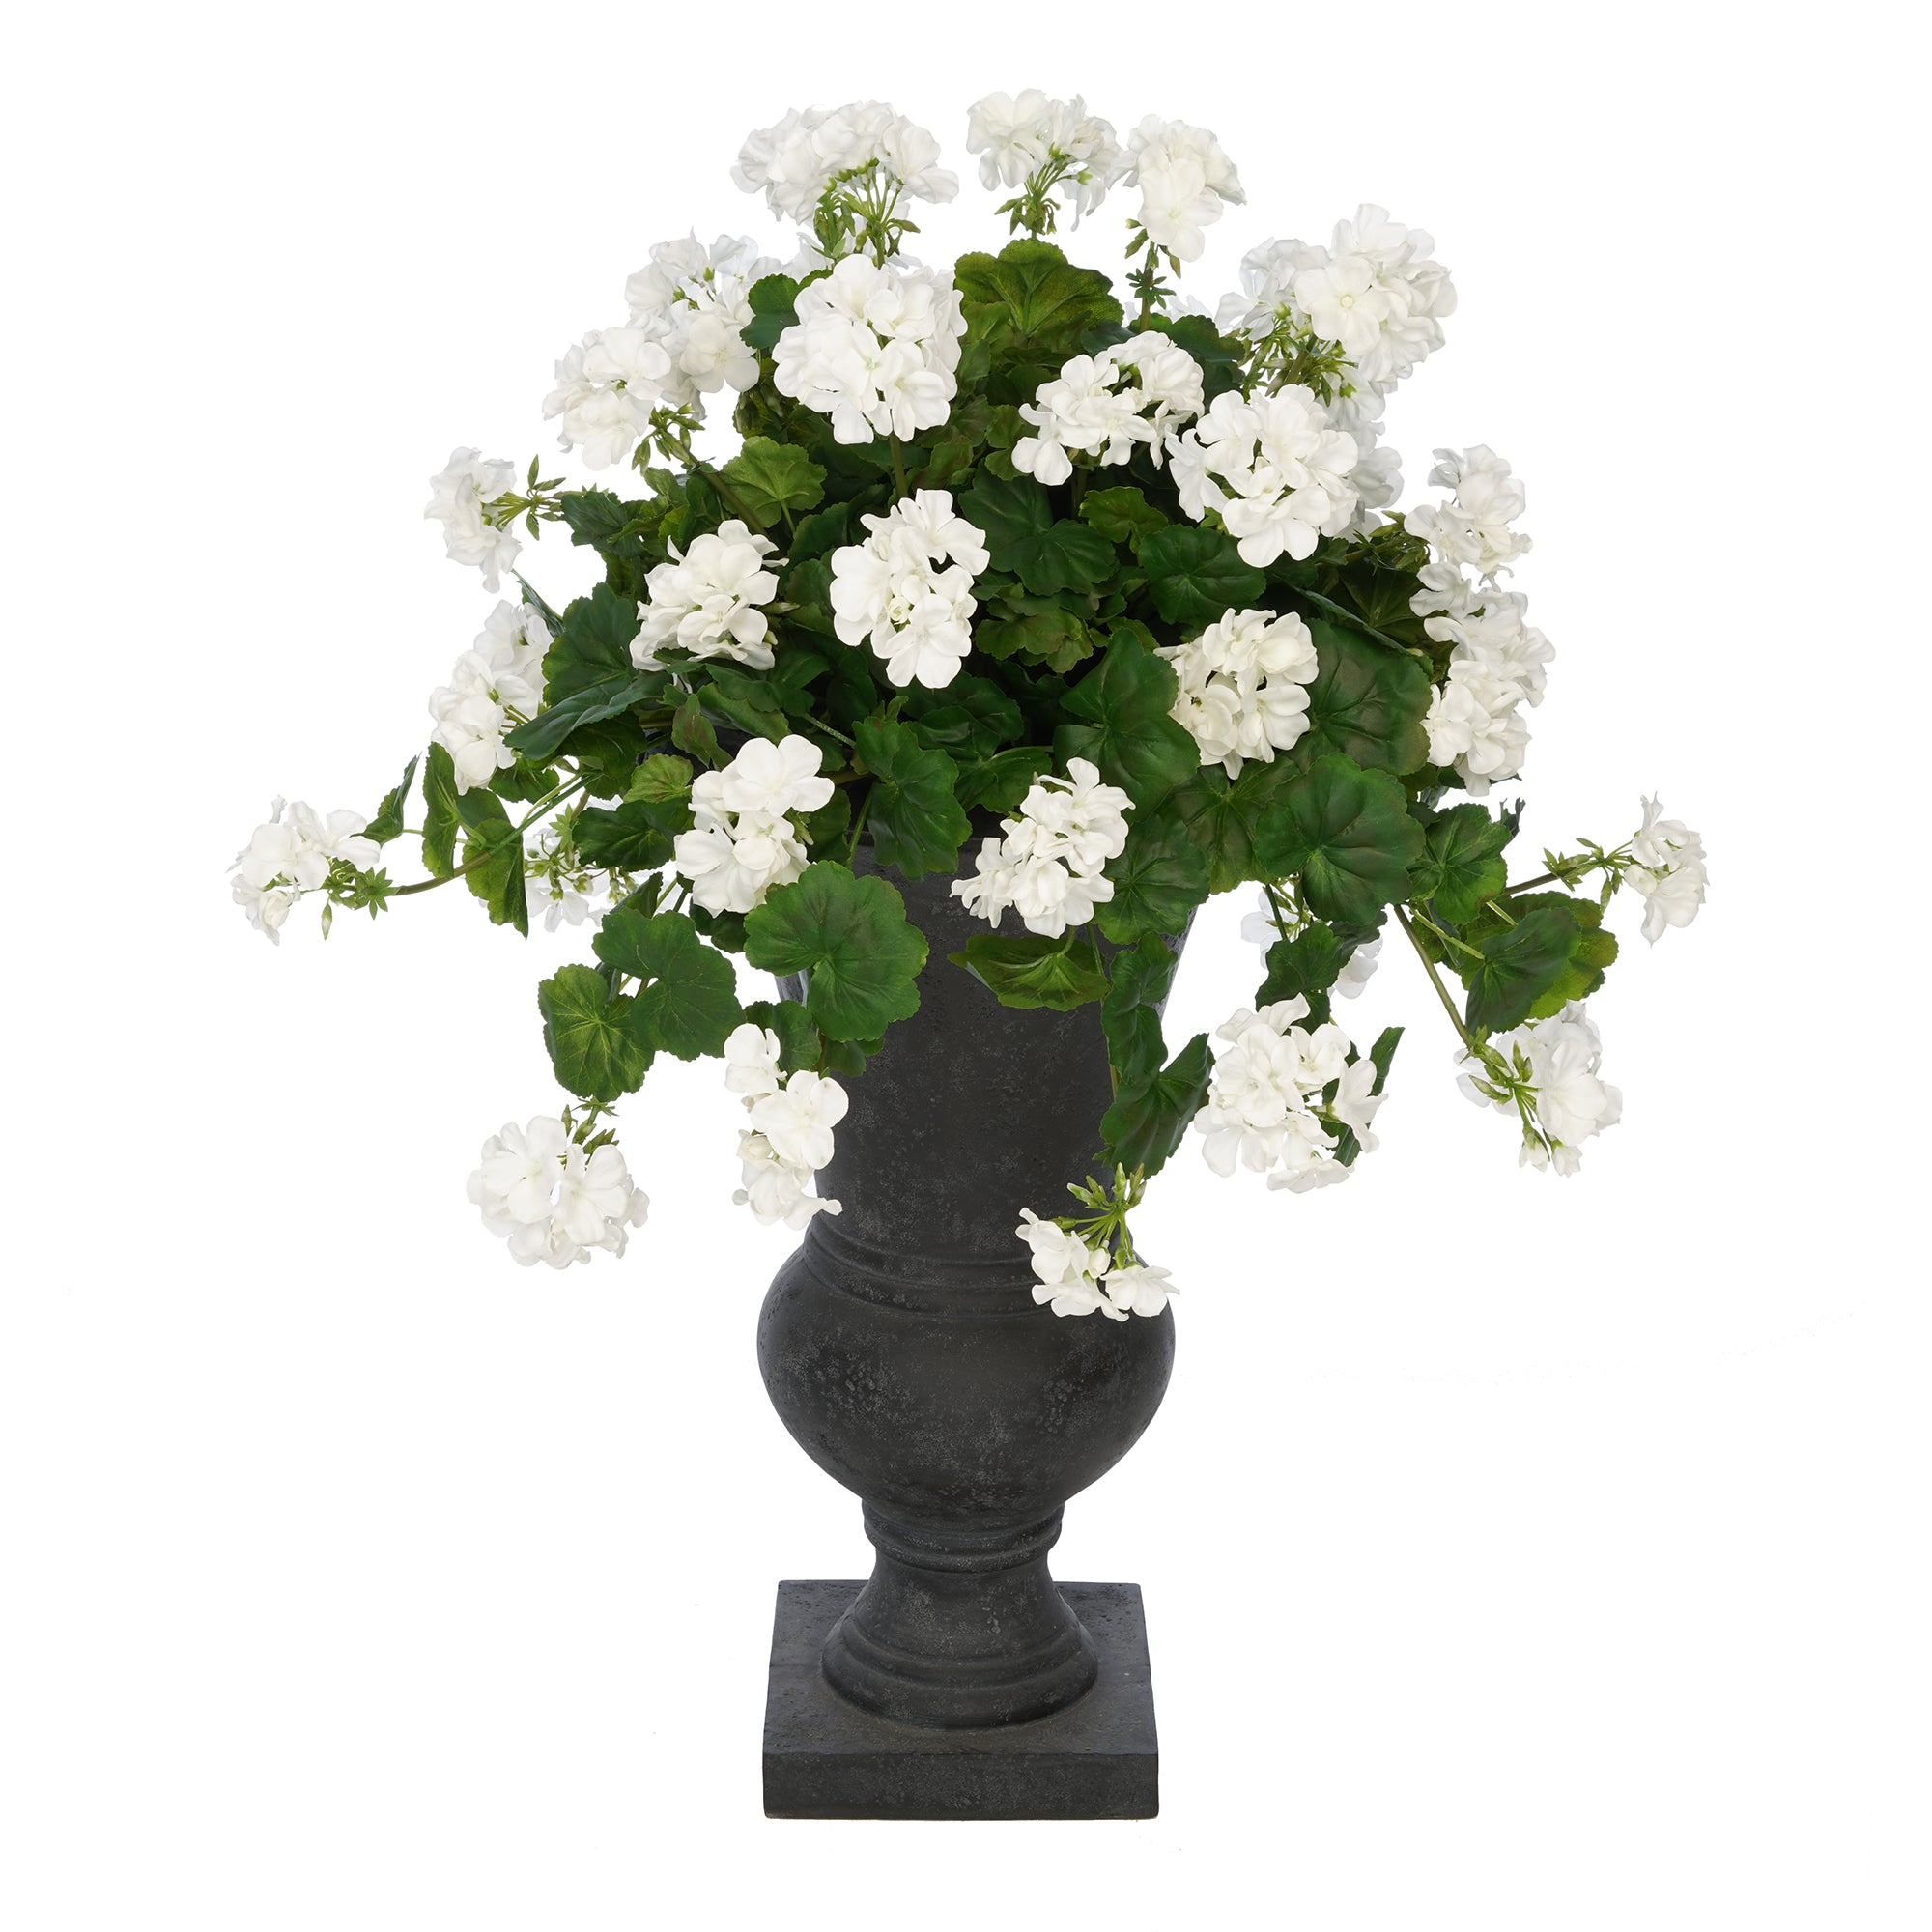 Faux Geranium in Black Roman Urn Planter House of Silk Flowers®